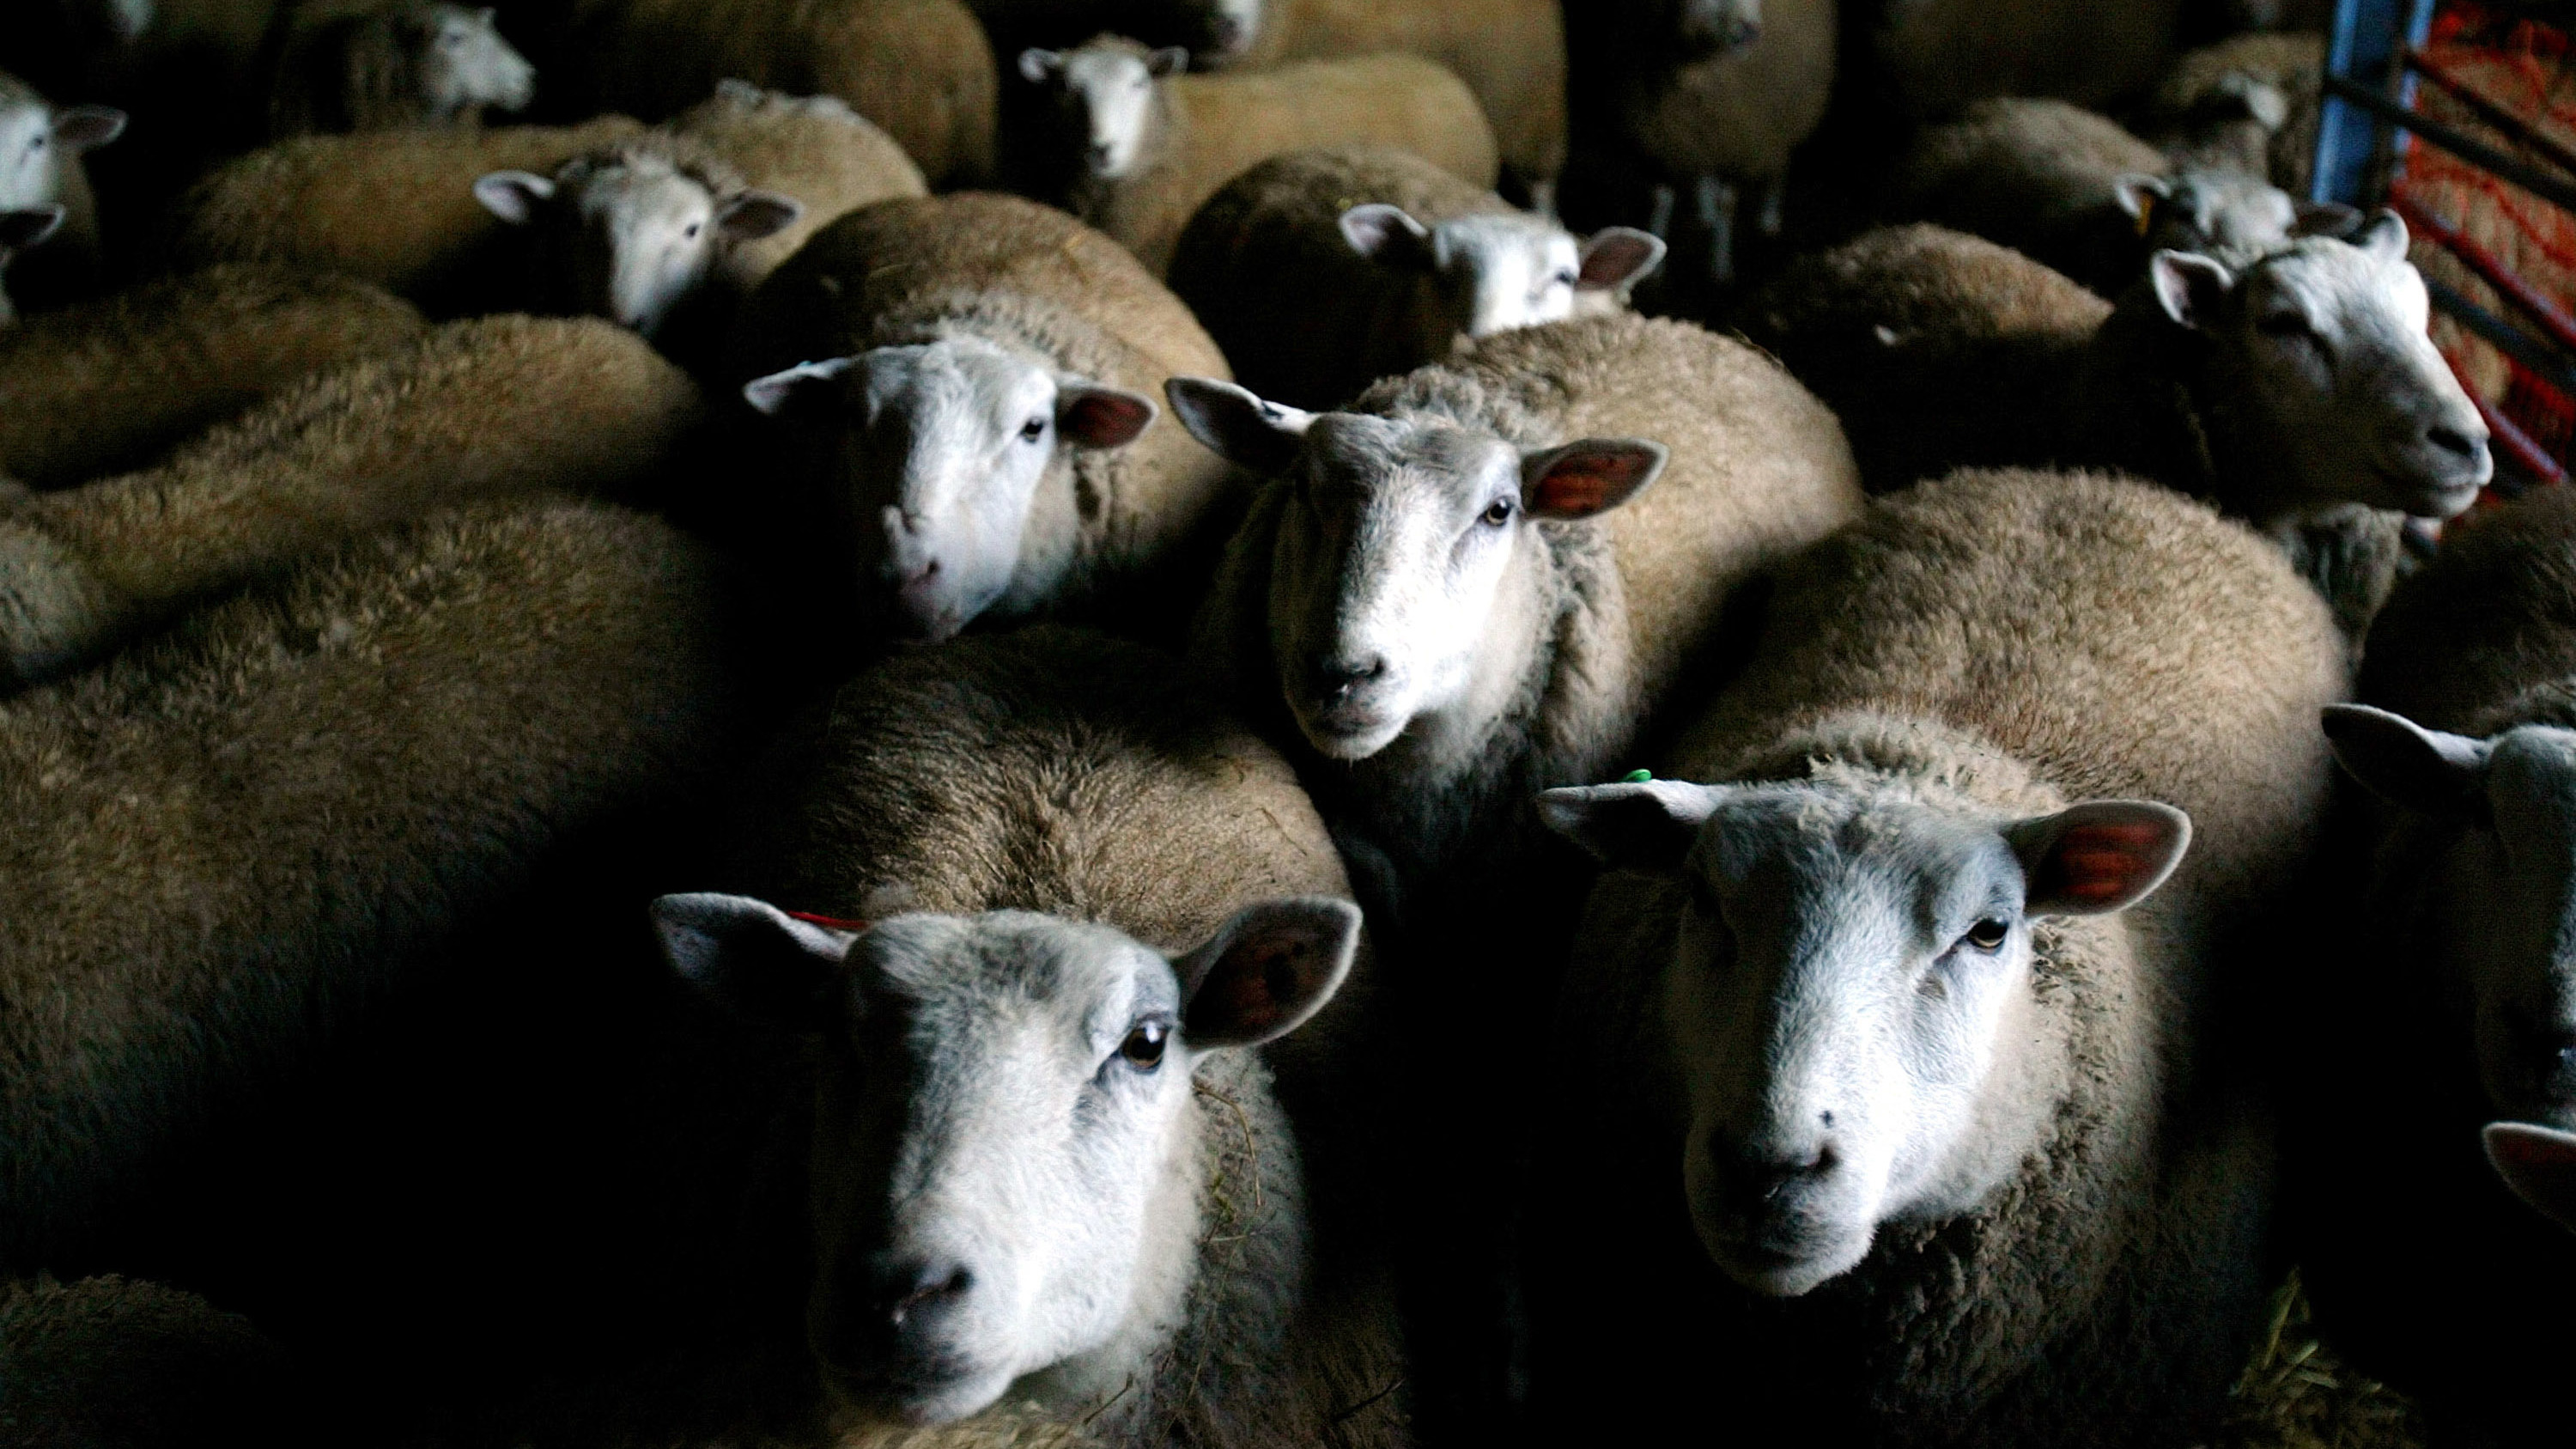 After Wwii Mutton Fell Out Of Favor In The U S Can It Make A Comeback The Salt Npr